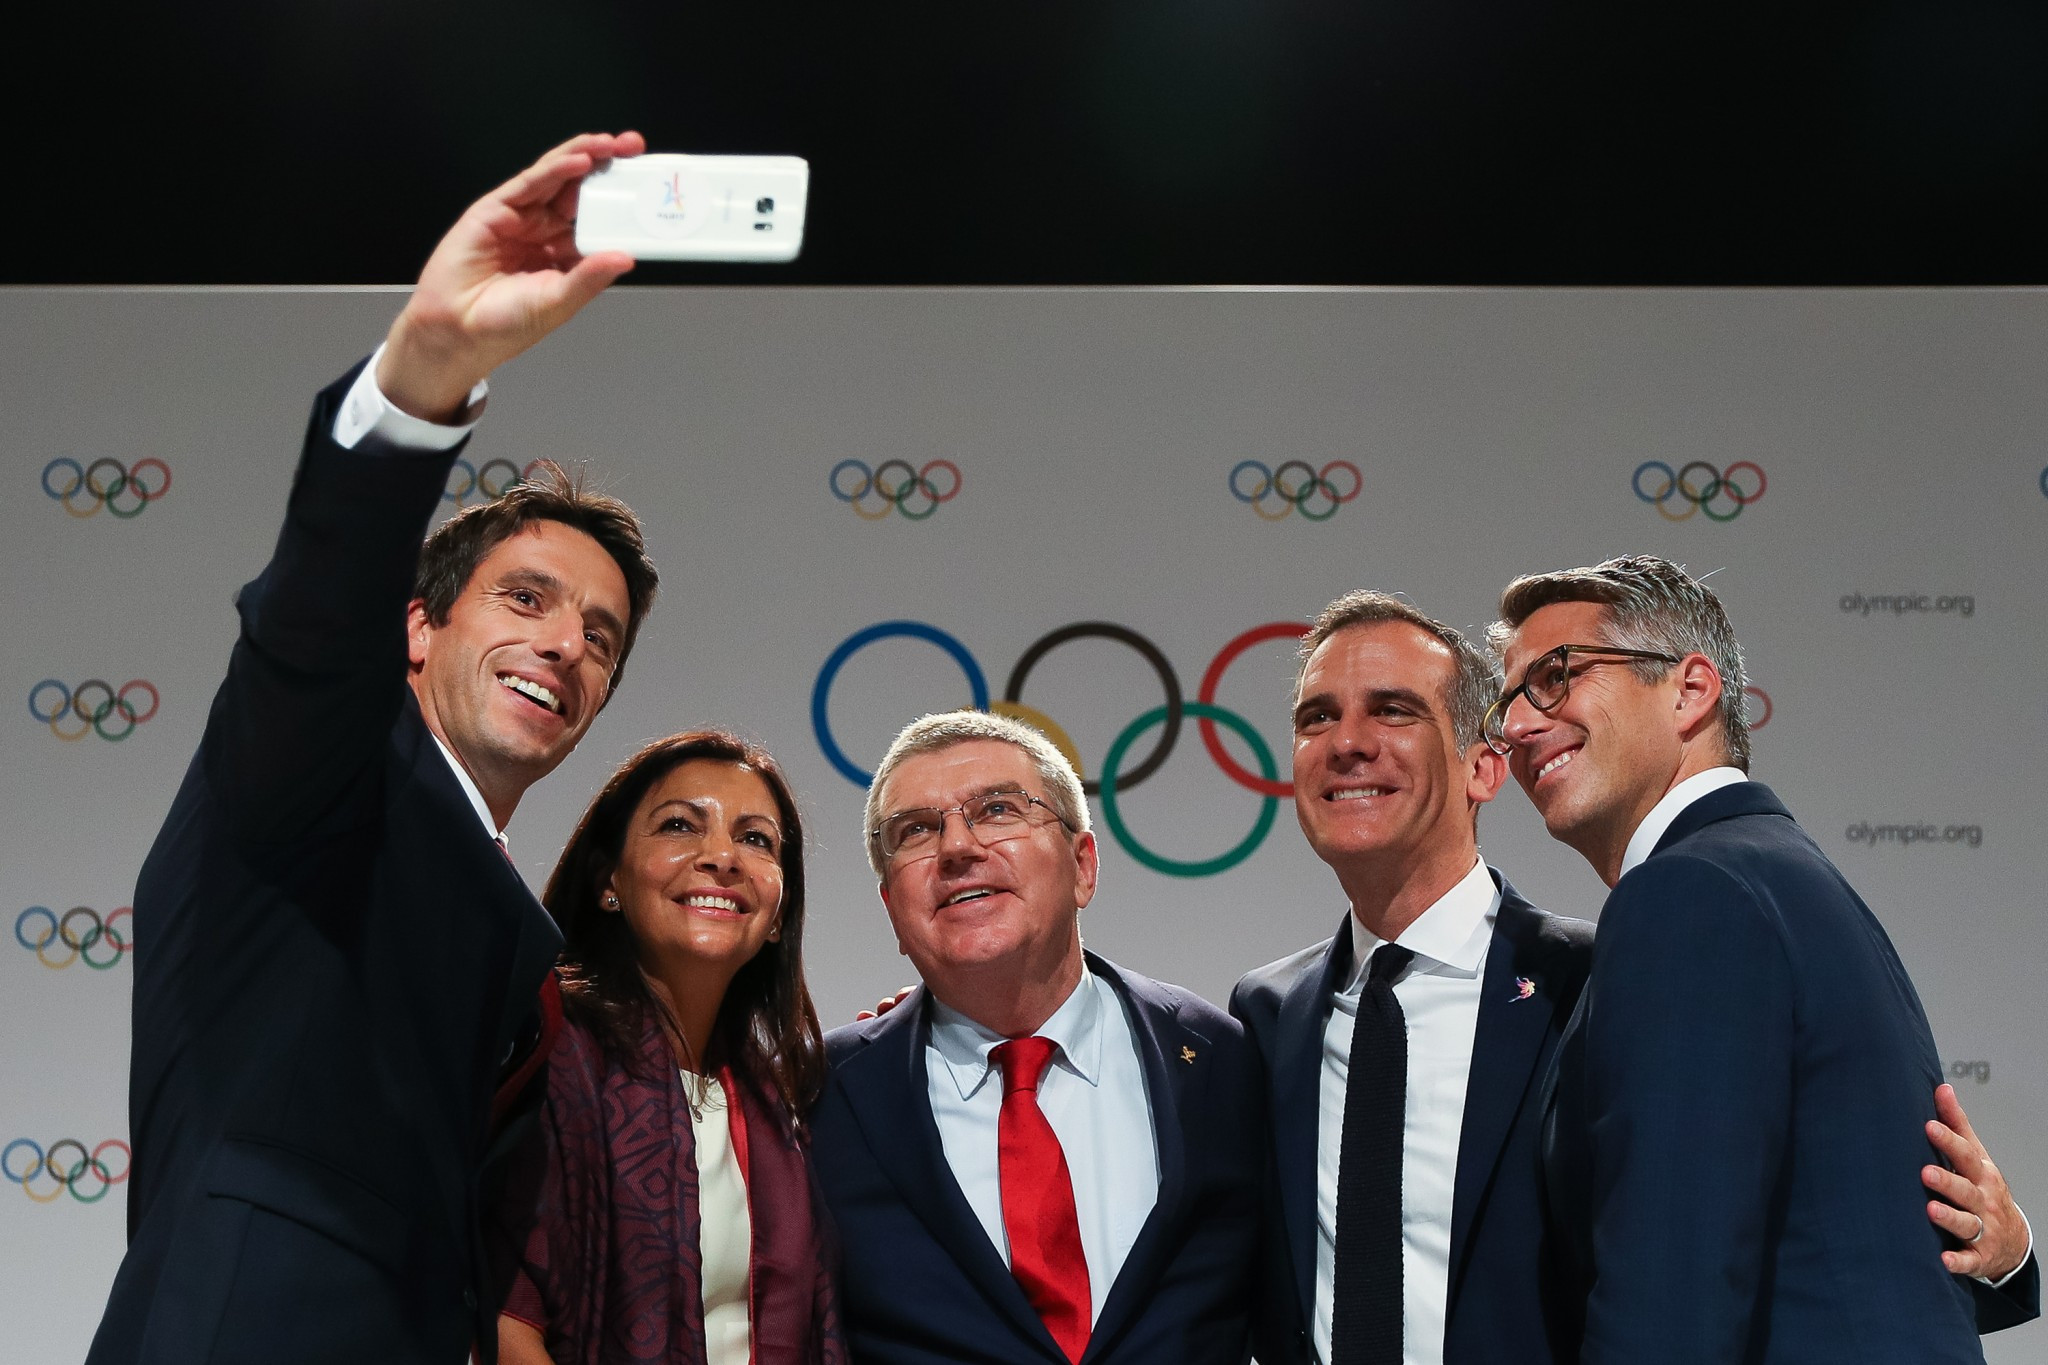 IOC President Thomas Bach hailed the agreement as a win-win-win ©Getty Images